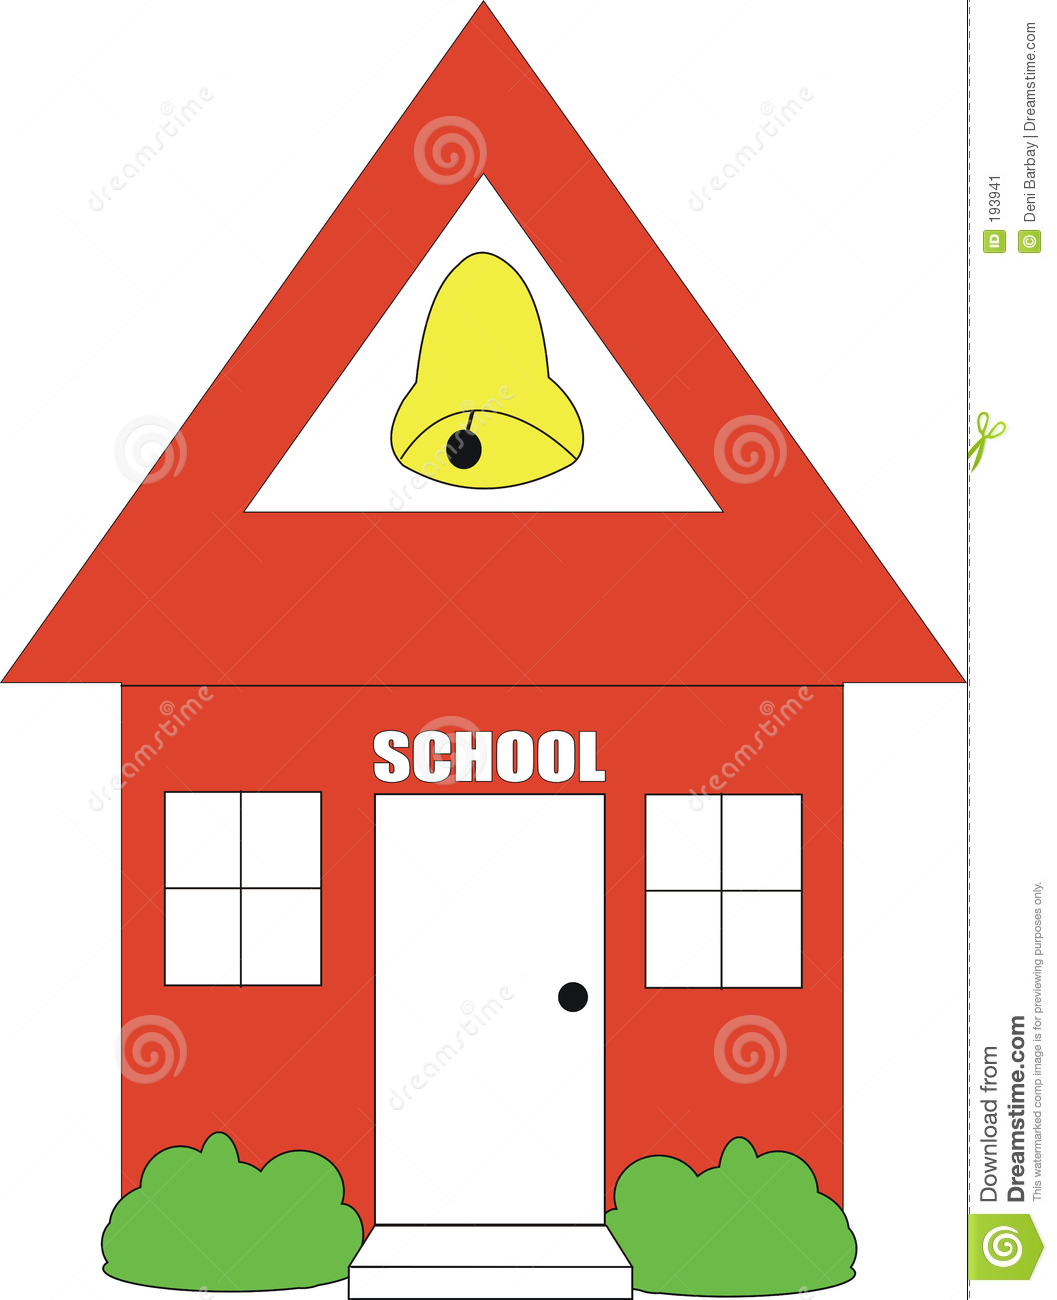 School House Clip Art School house